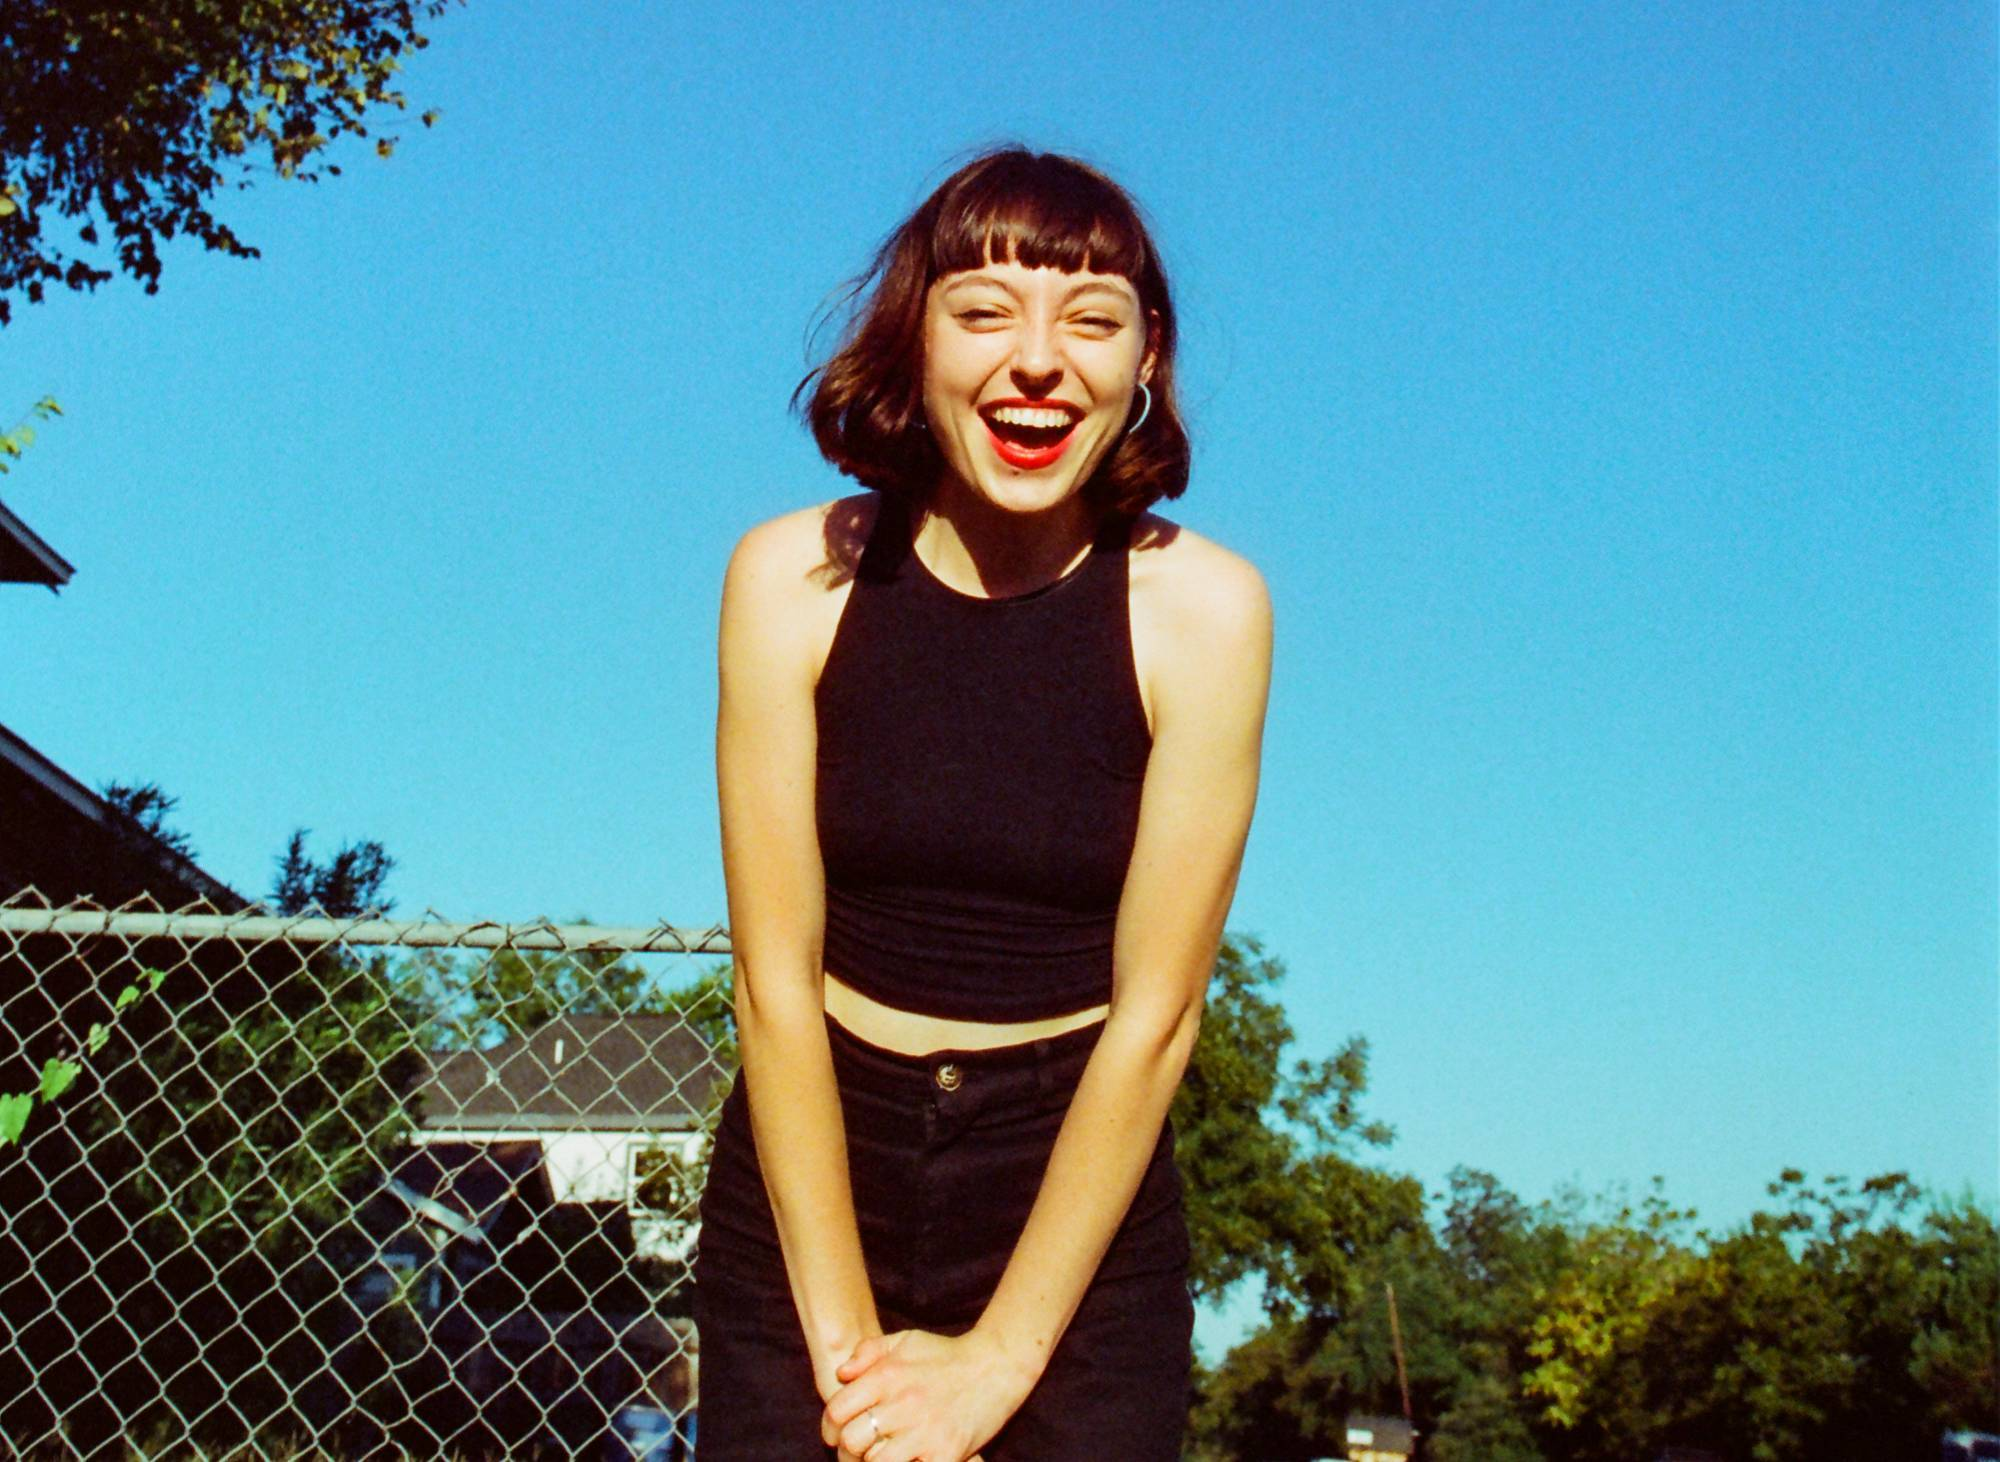 The world according to Stella Donnelly